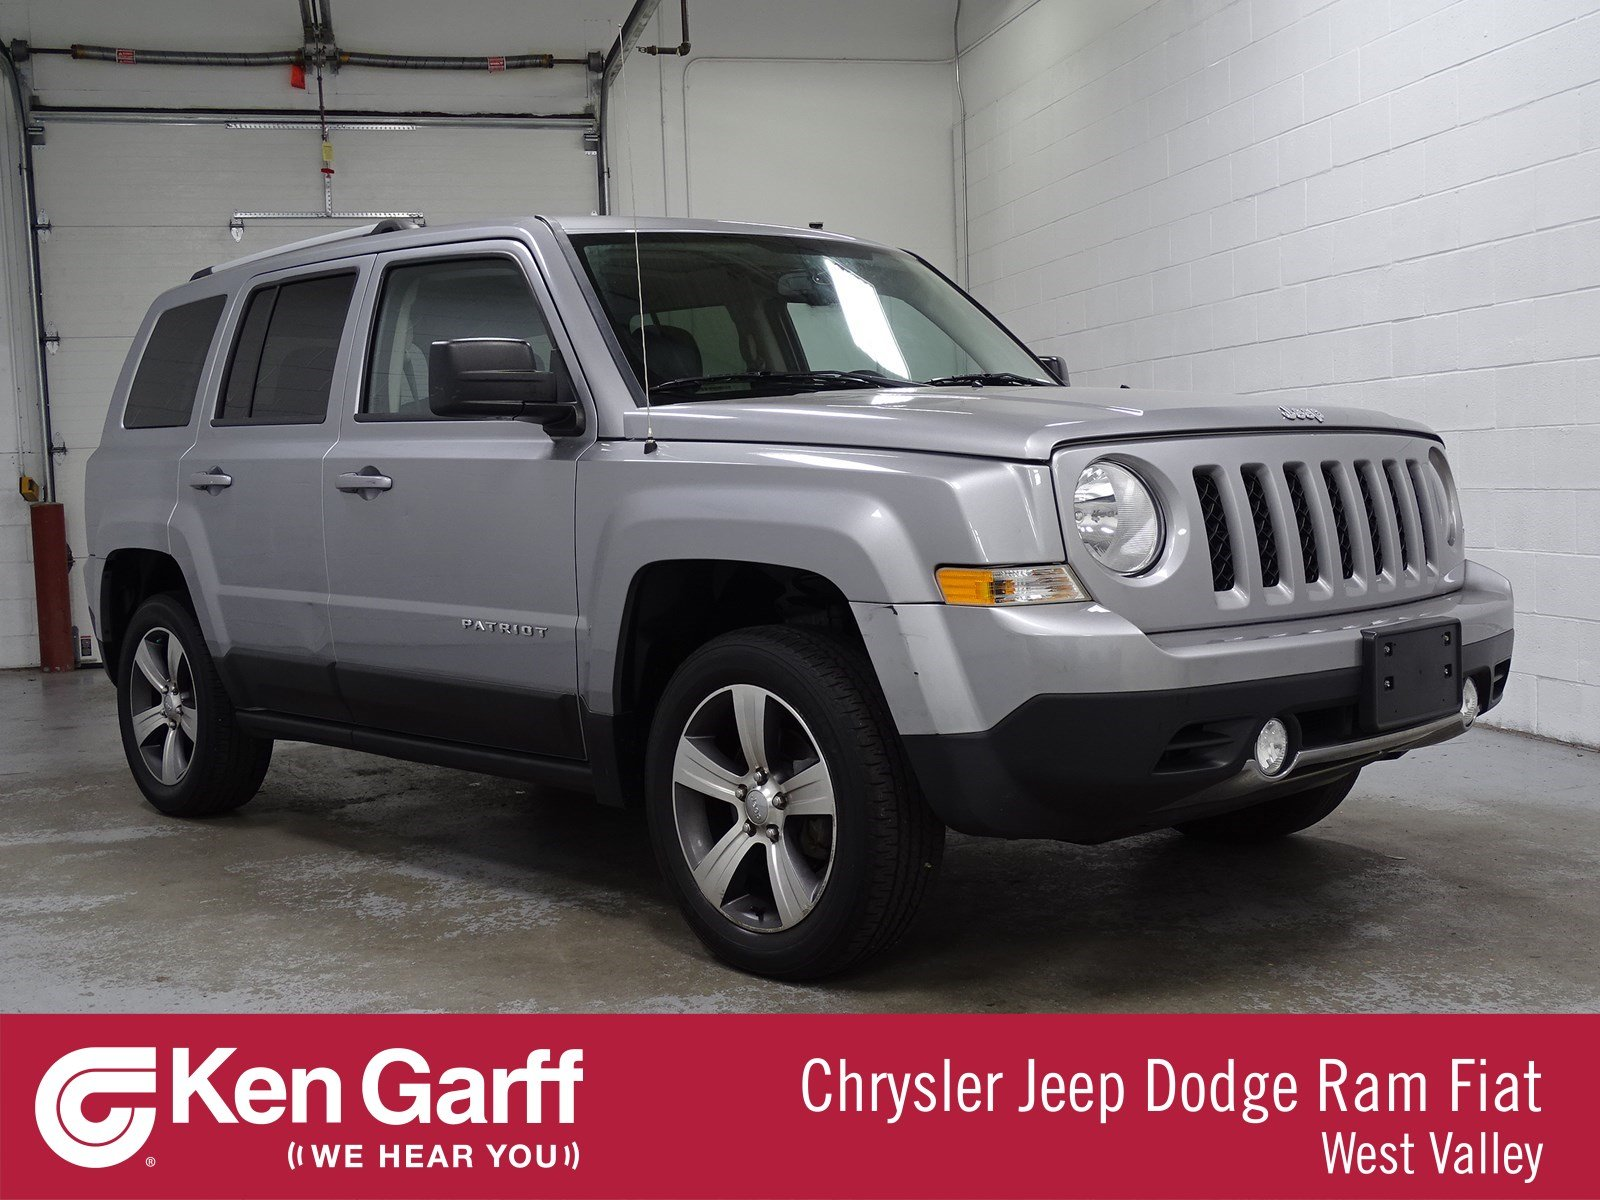 Certified Pre-Owned 2016 Jeep Patriot High Altitude Edition